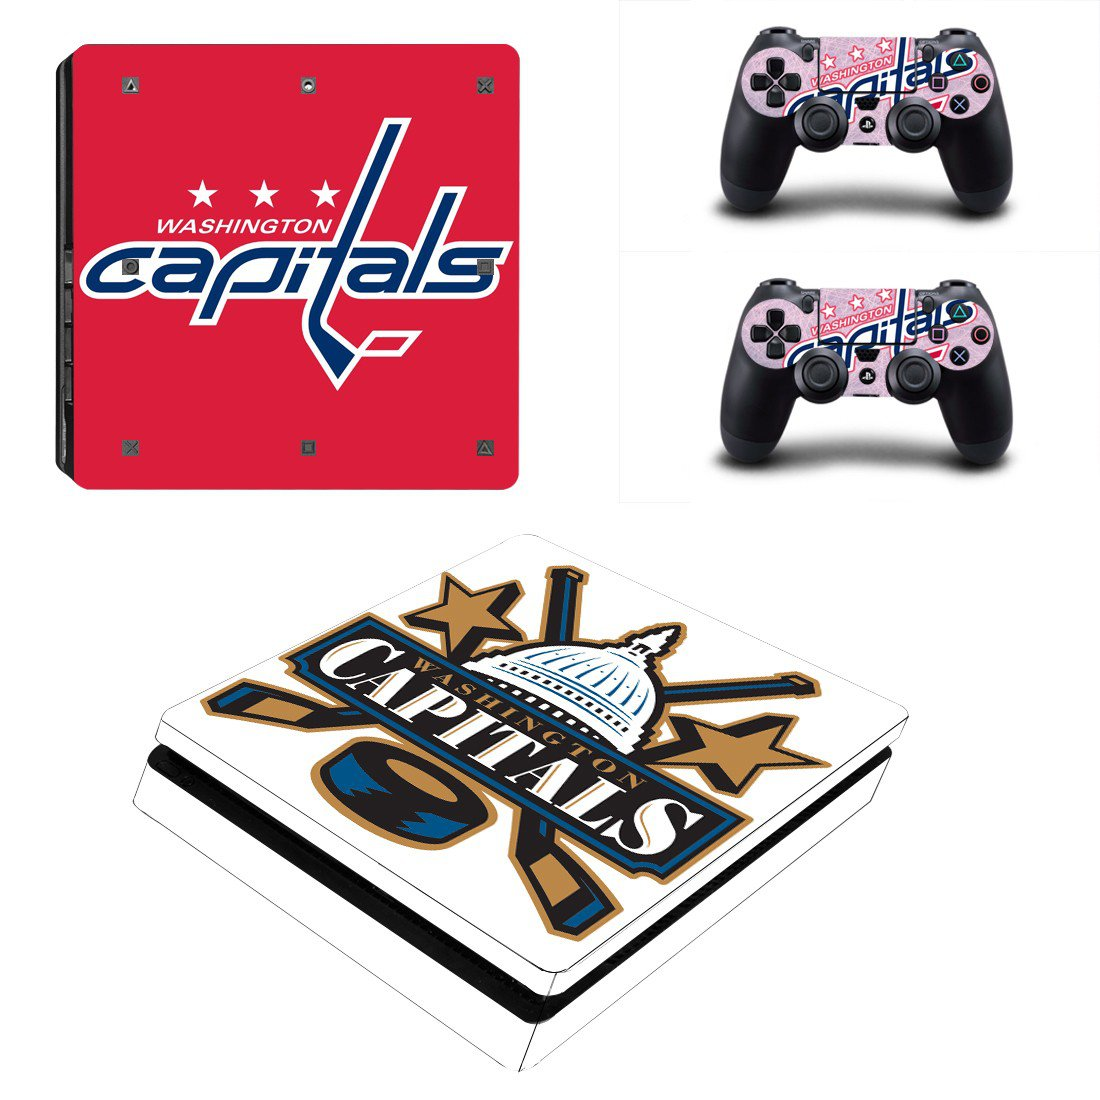 Washington Capitals Play Station 4 slim skin decal for console and 2 controllers